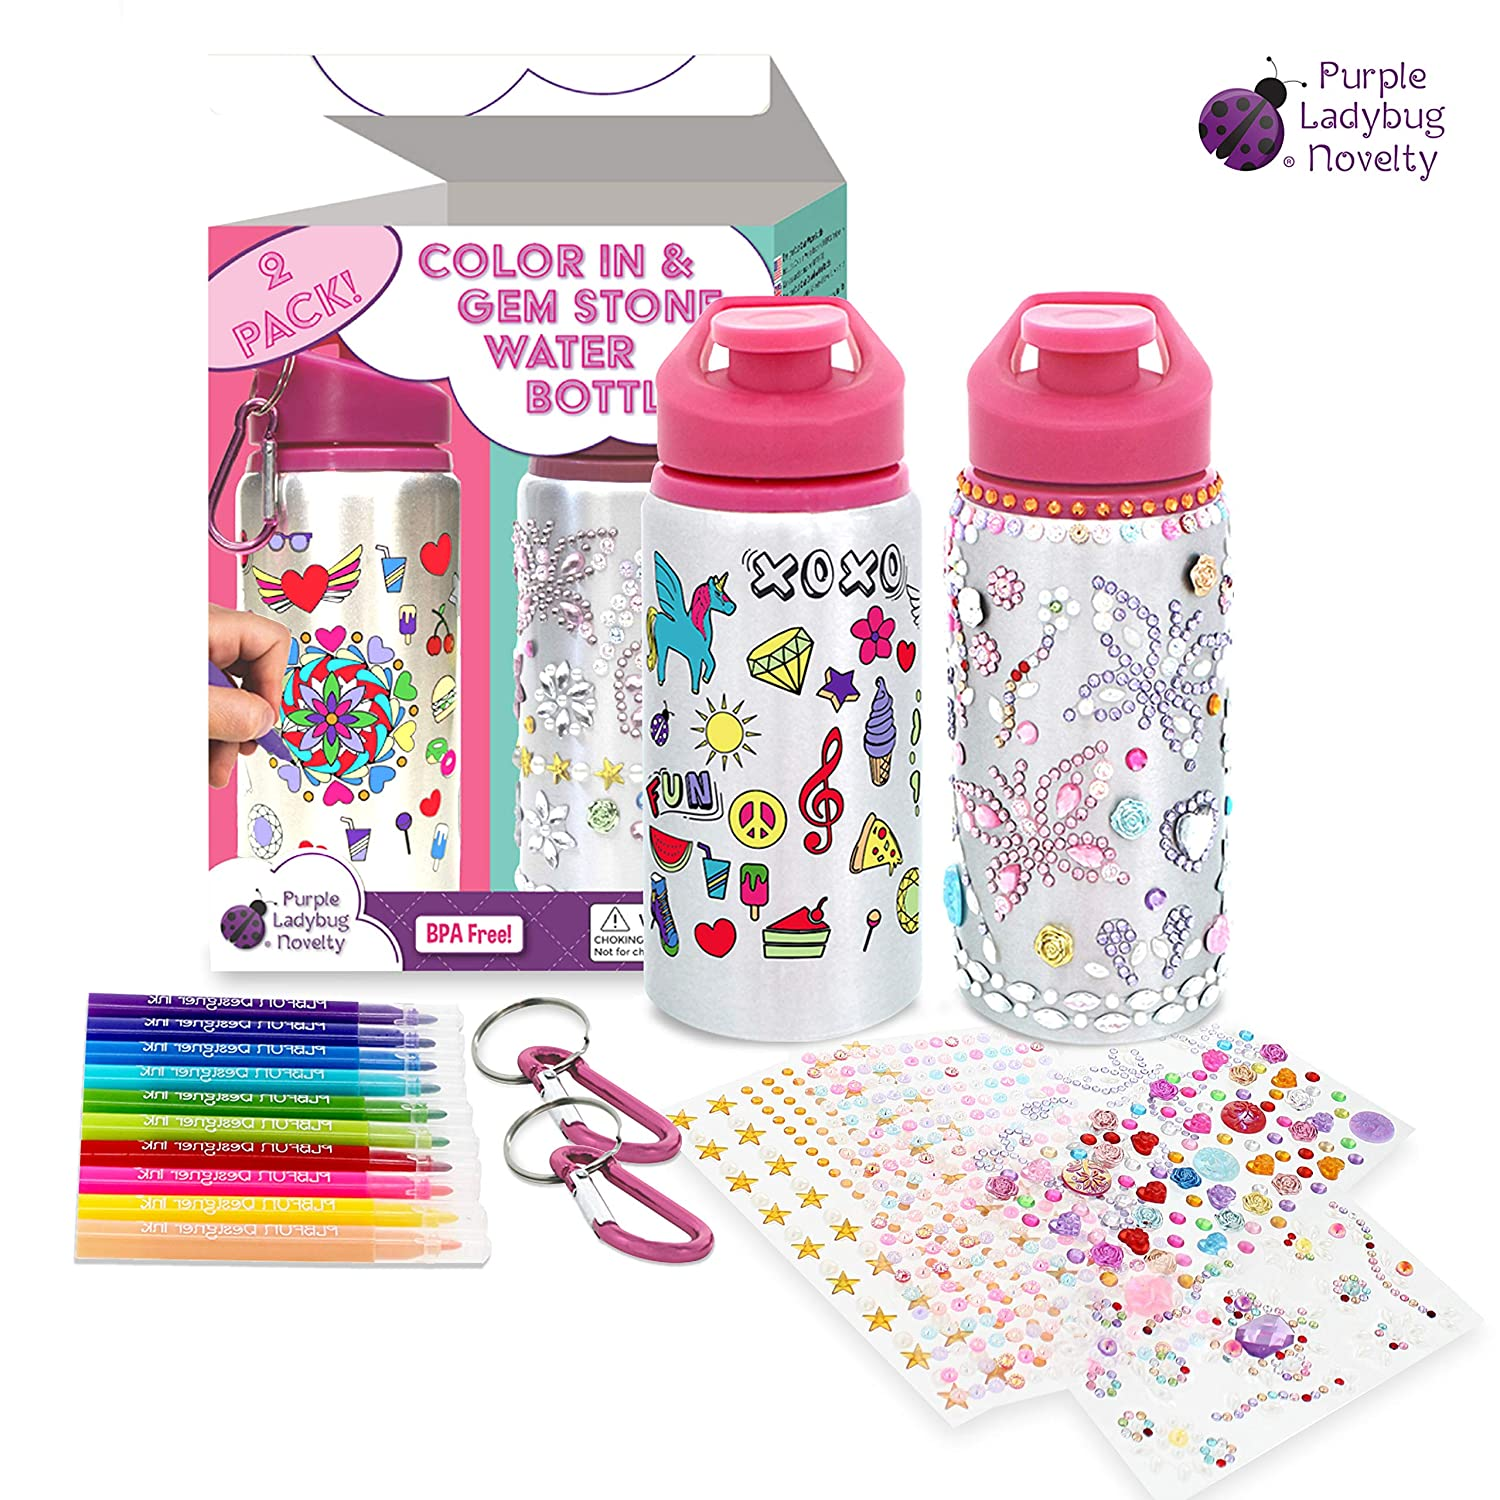 Two Water Bottles Set for Girls - Our Color Your Own Kids Water Bottle Plus Our Decorate Your Own Glitter Gem Water Bottle with Coloring Markers   Sheets of Rhinestone Stickers  Great Gifts for Girl